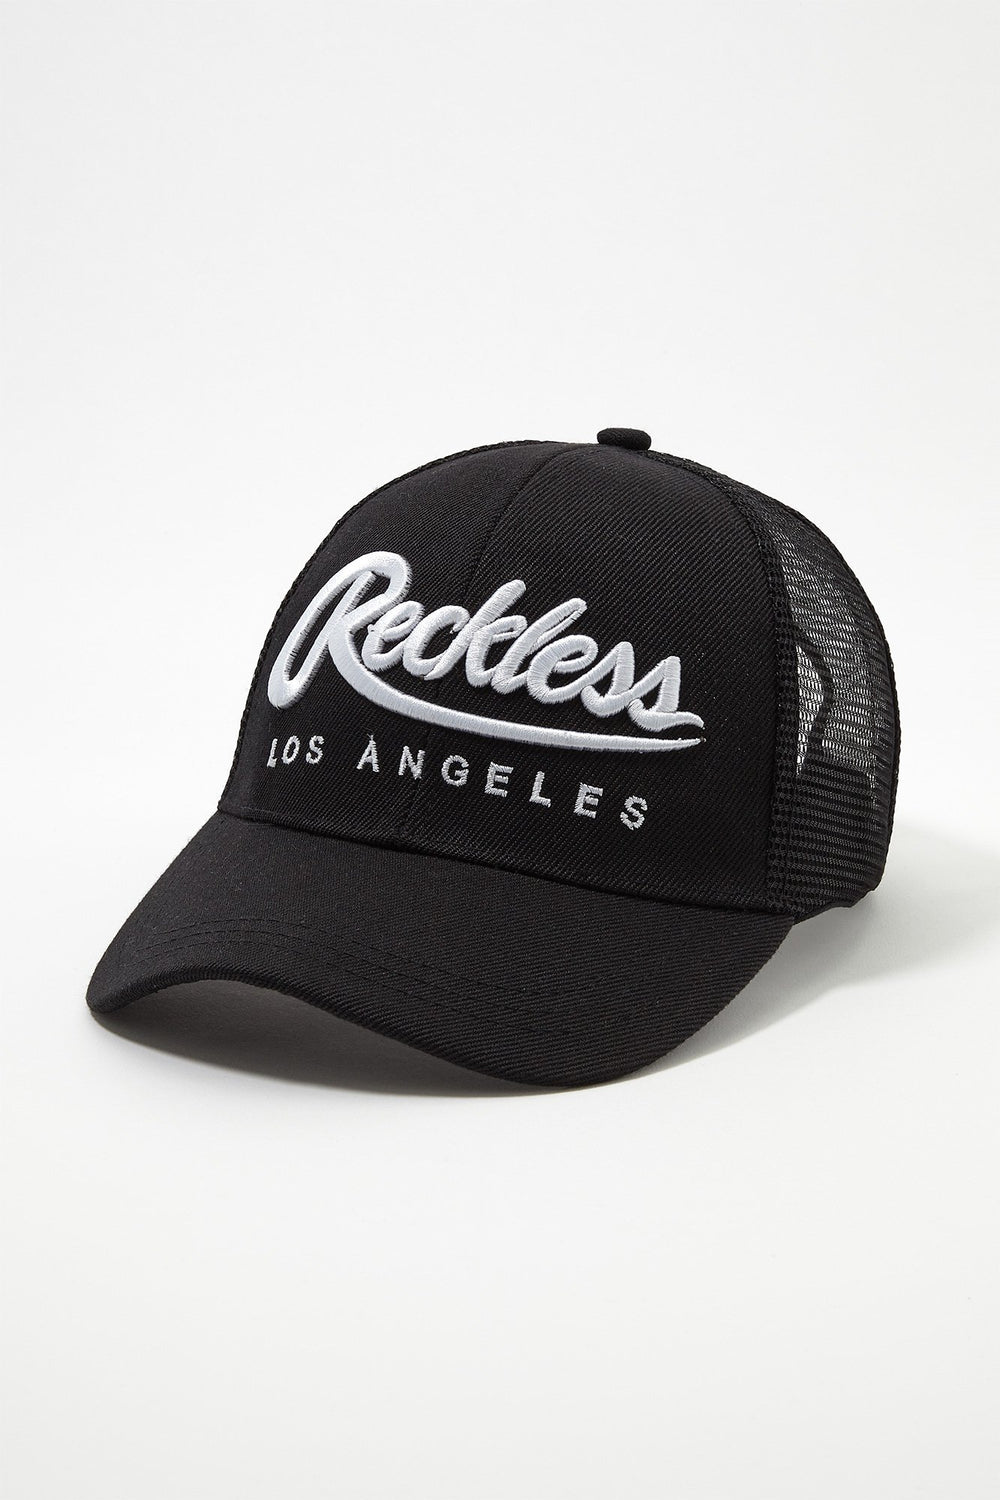 Young & Reckless Mens Snapback Trucker Hat Black